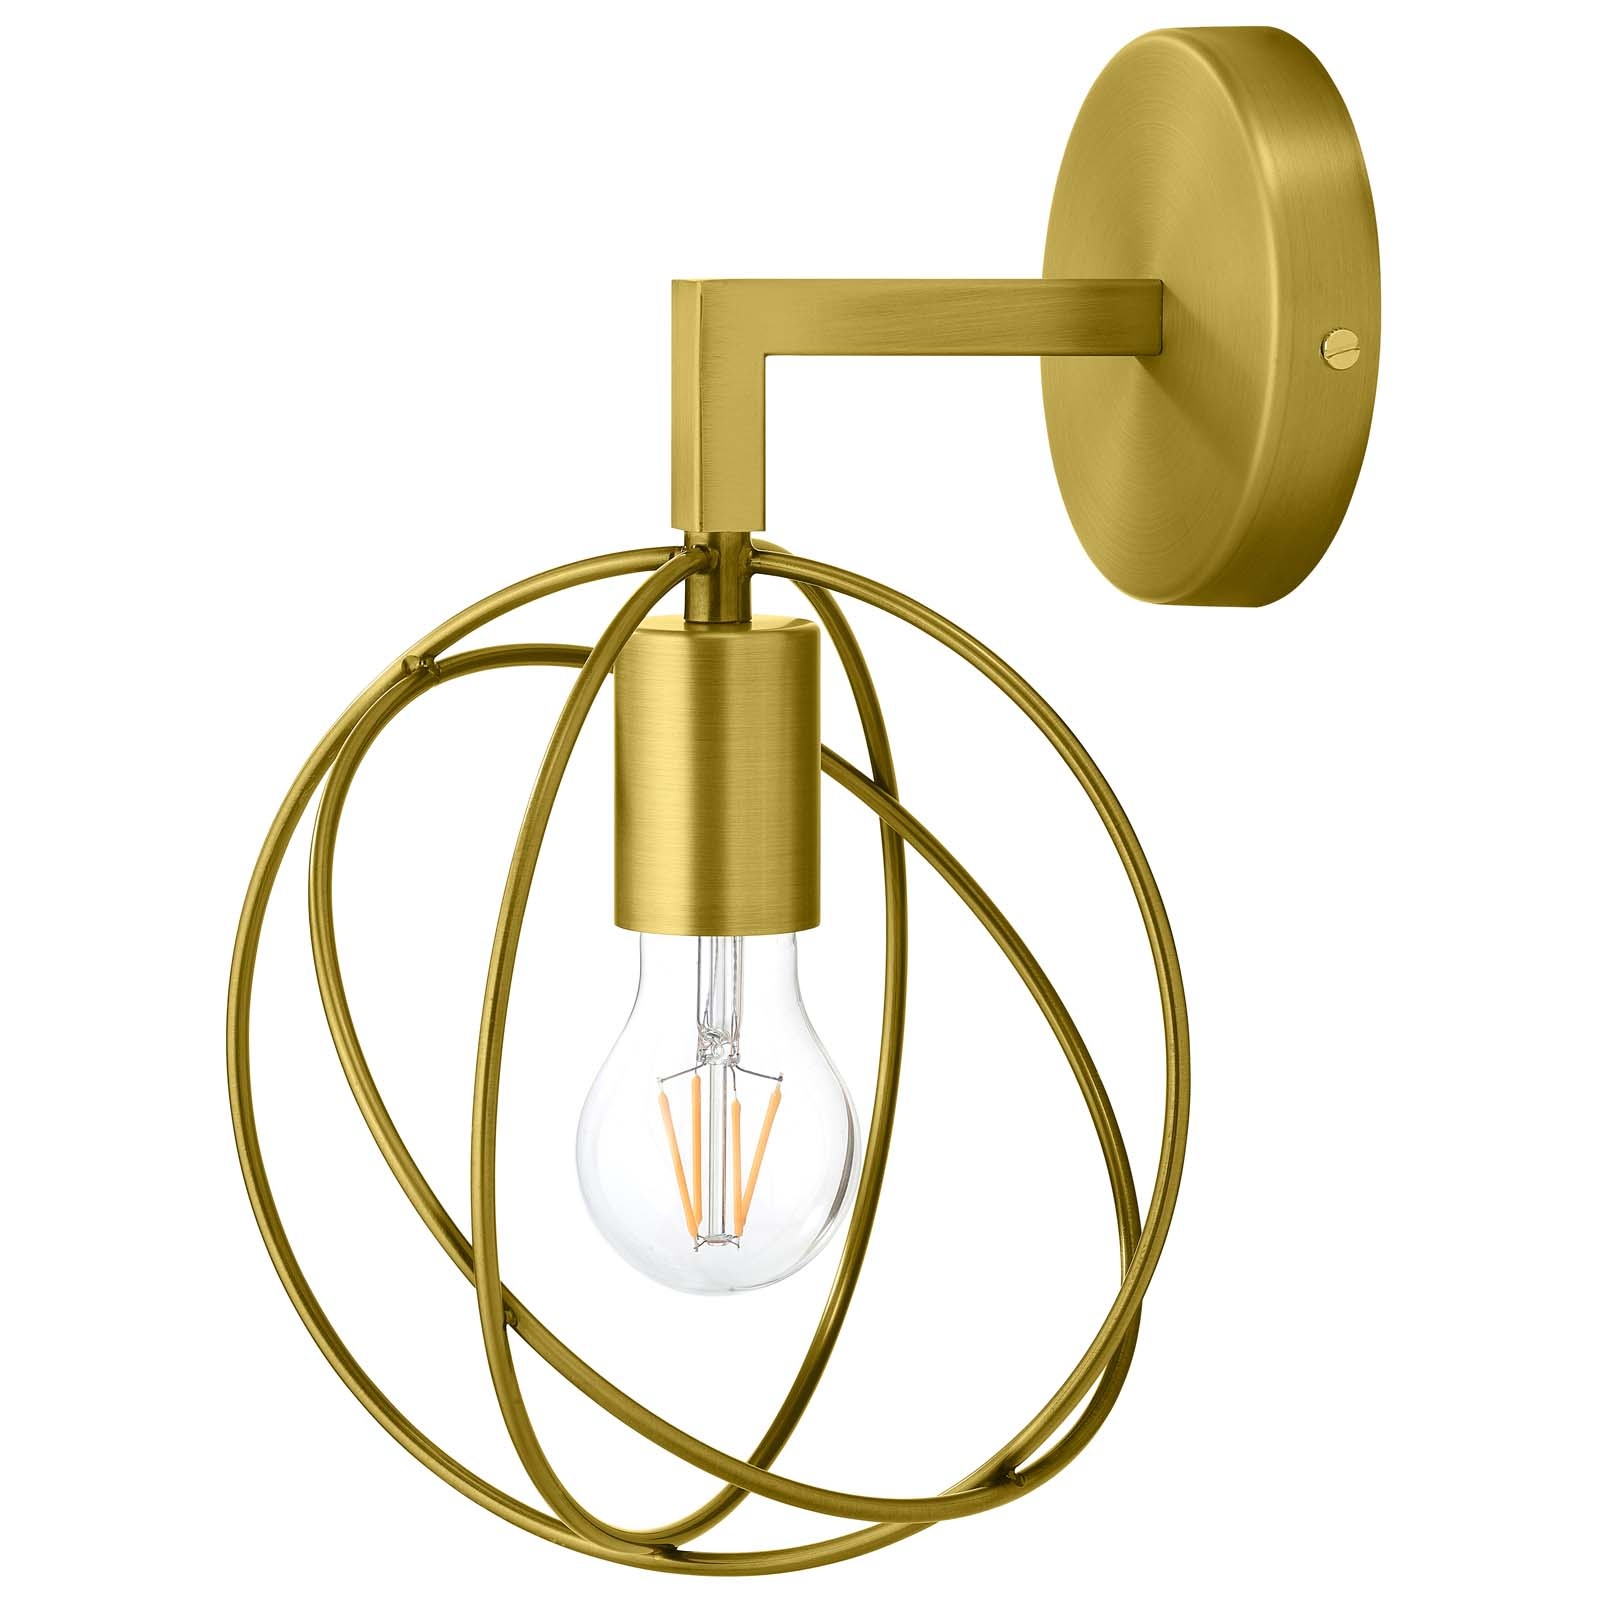 Perimeter Brass Wall Sconce Light Fixture on Brass Wall Sconces Non Electric Lighting id=55372